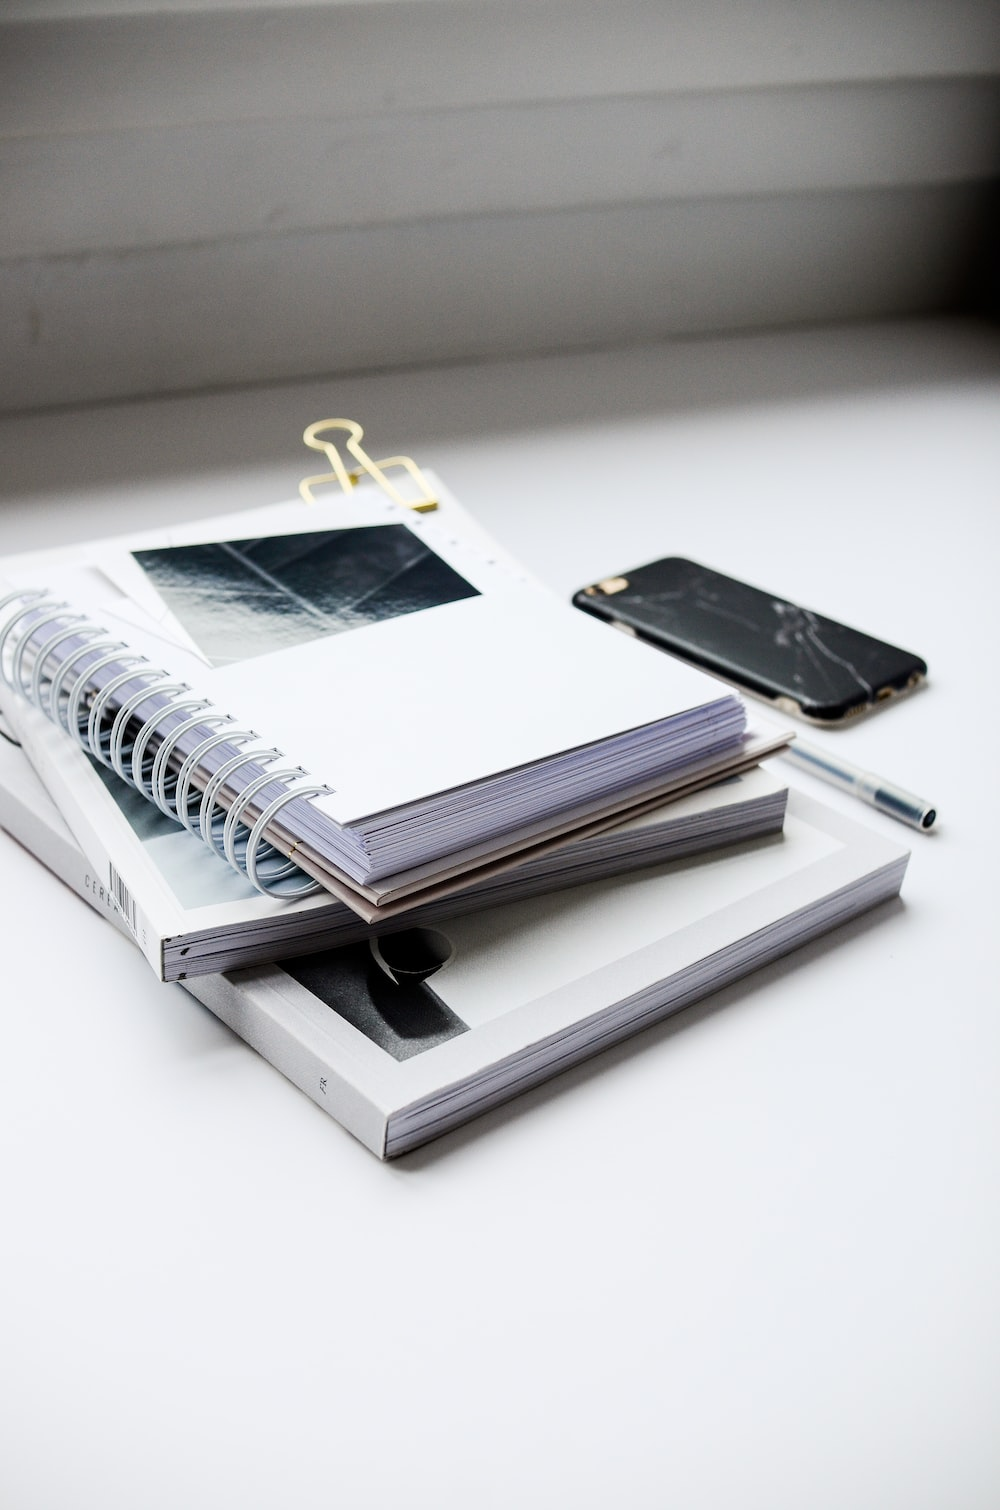 white spiral notebook beside black smartphone on white table